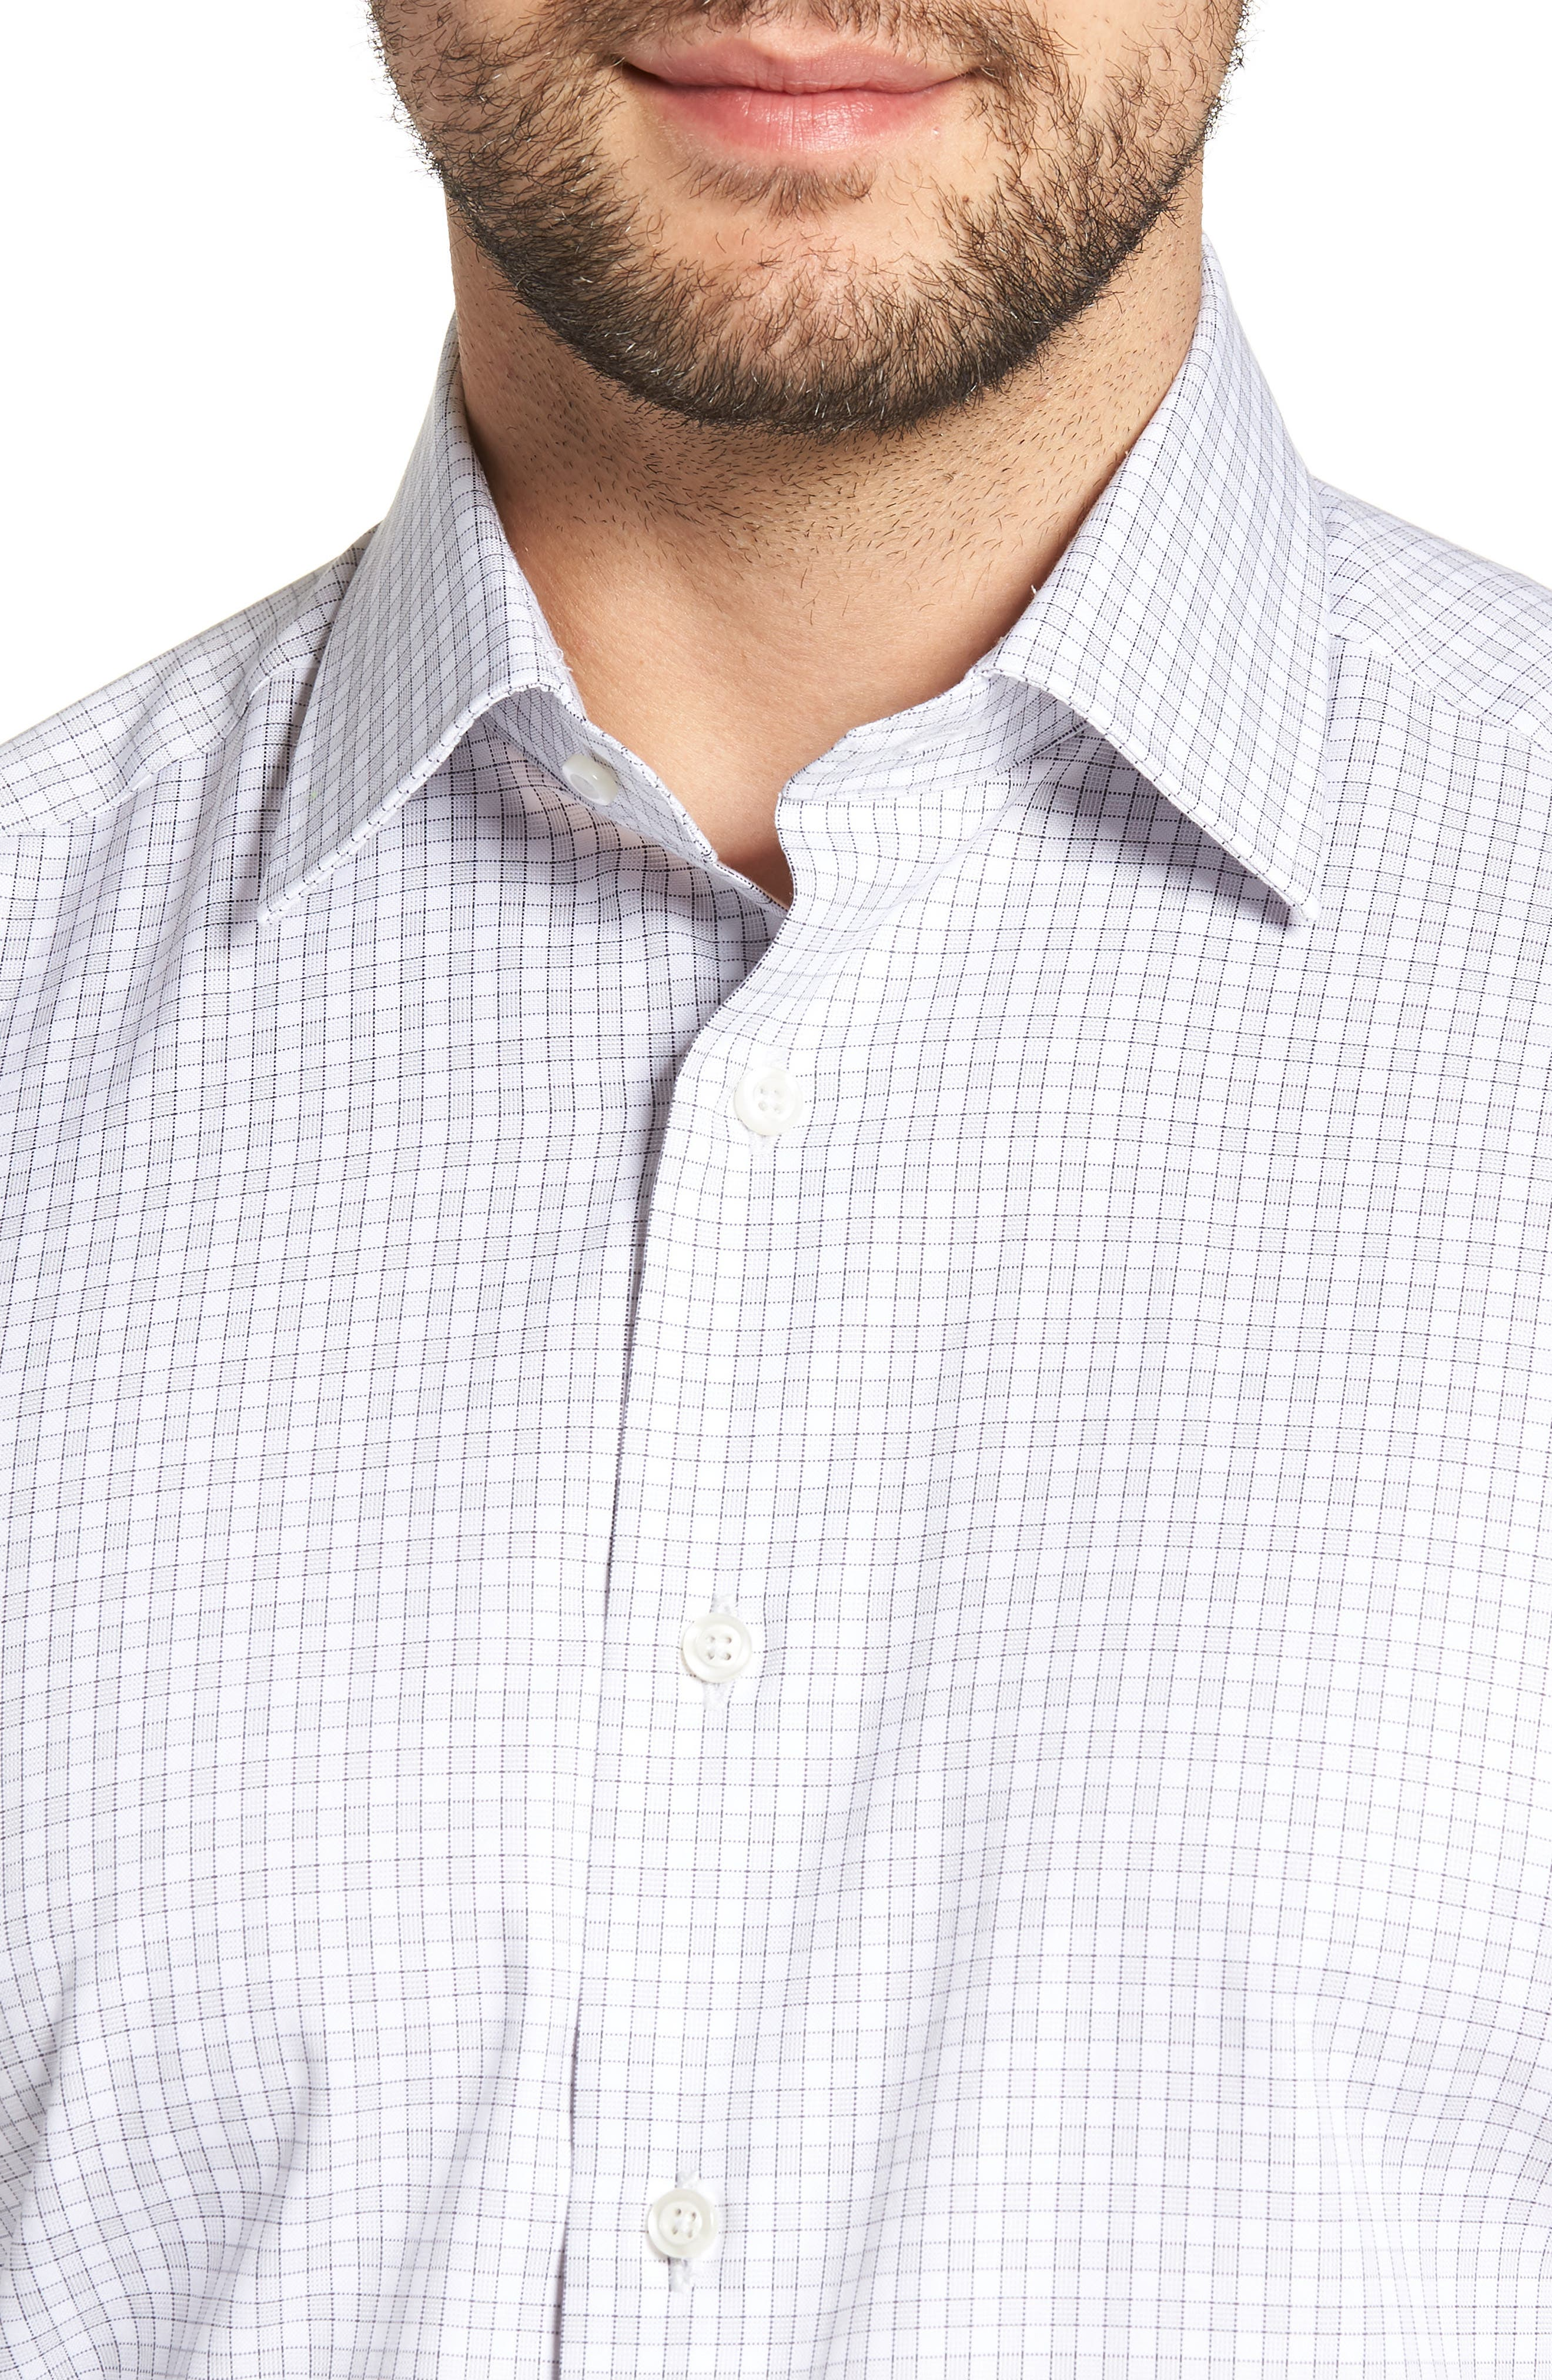 Regular Fit Check Dress Shirt,                             Alternate thumbnail 2, color,                             GRAY